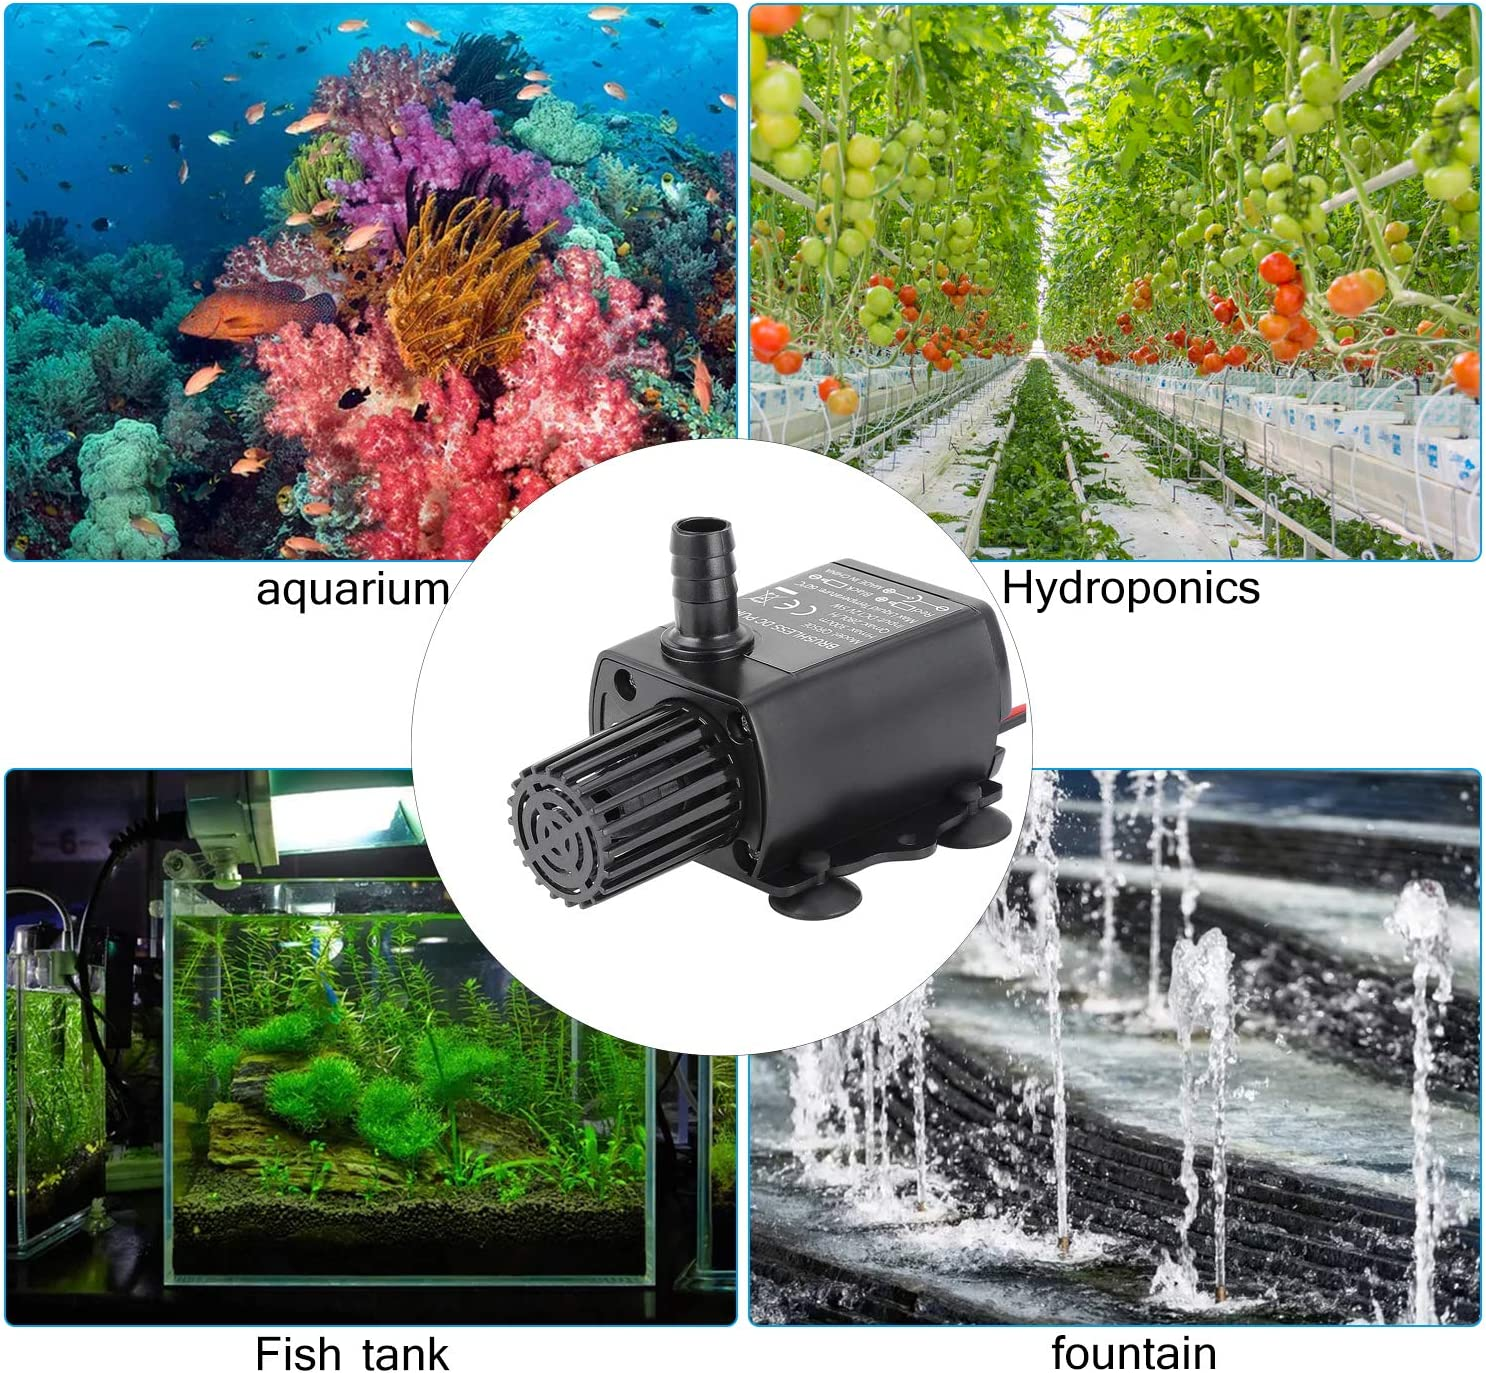 Aquarium Kyrio Mini Brushless Water Pump Irrigation System and Other Water Circulation Applications DC 12V Small Submersible Water Pump Brushless Motor for Small Water Fountain Water Fall